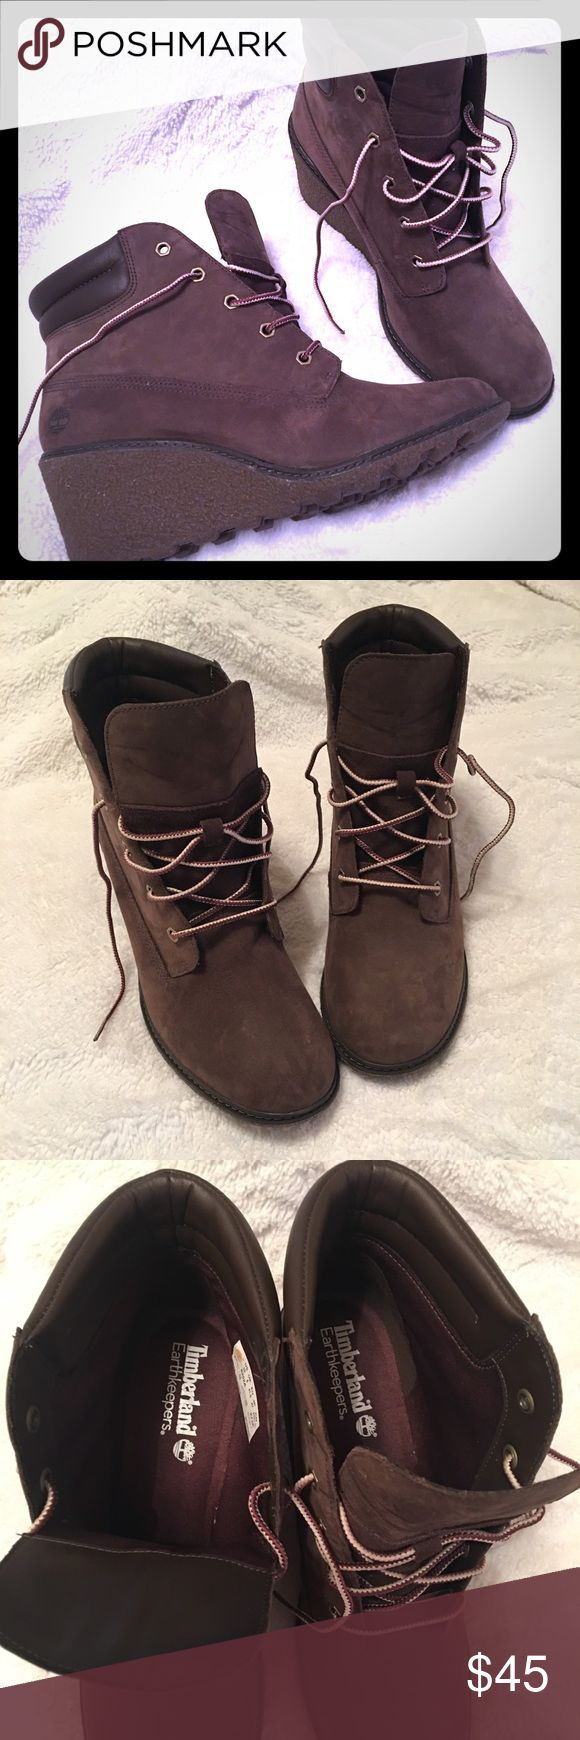 Timberland Boots Ladies Timberland Booties Timberland Shoes Ankle Boots & Booties